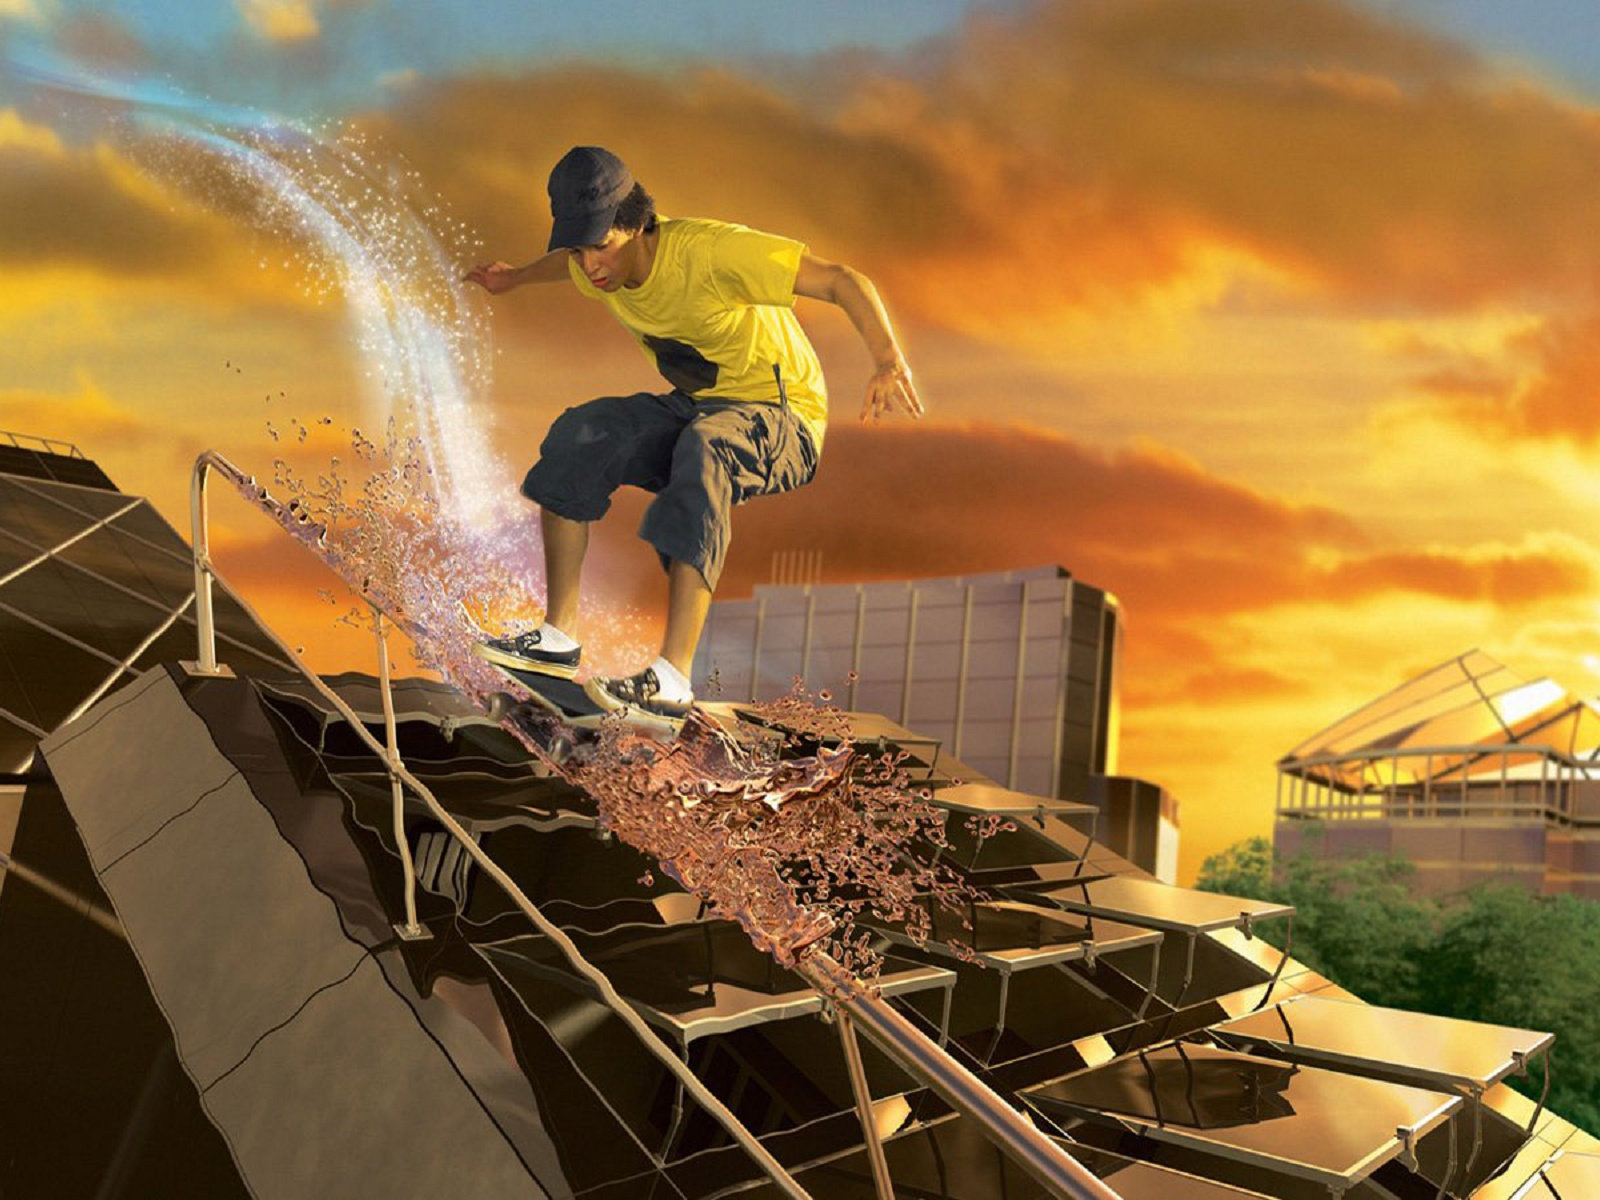 Skateboarding Wallpaper and Background Image   1600x1200 ...